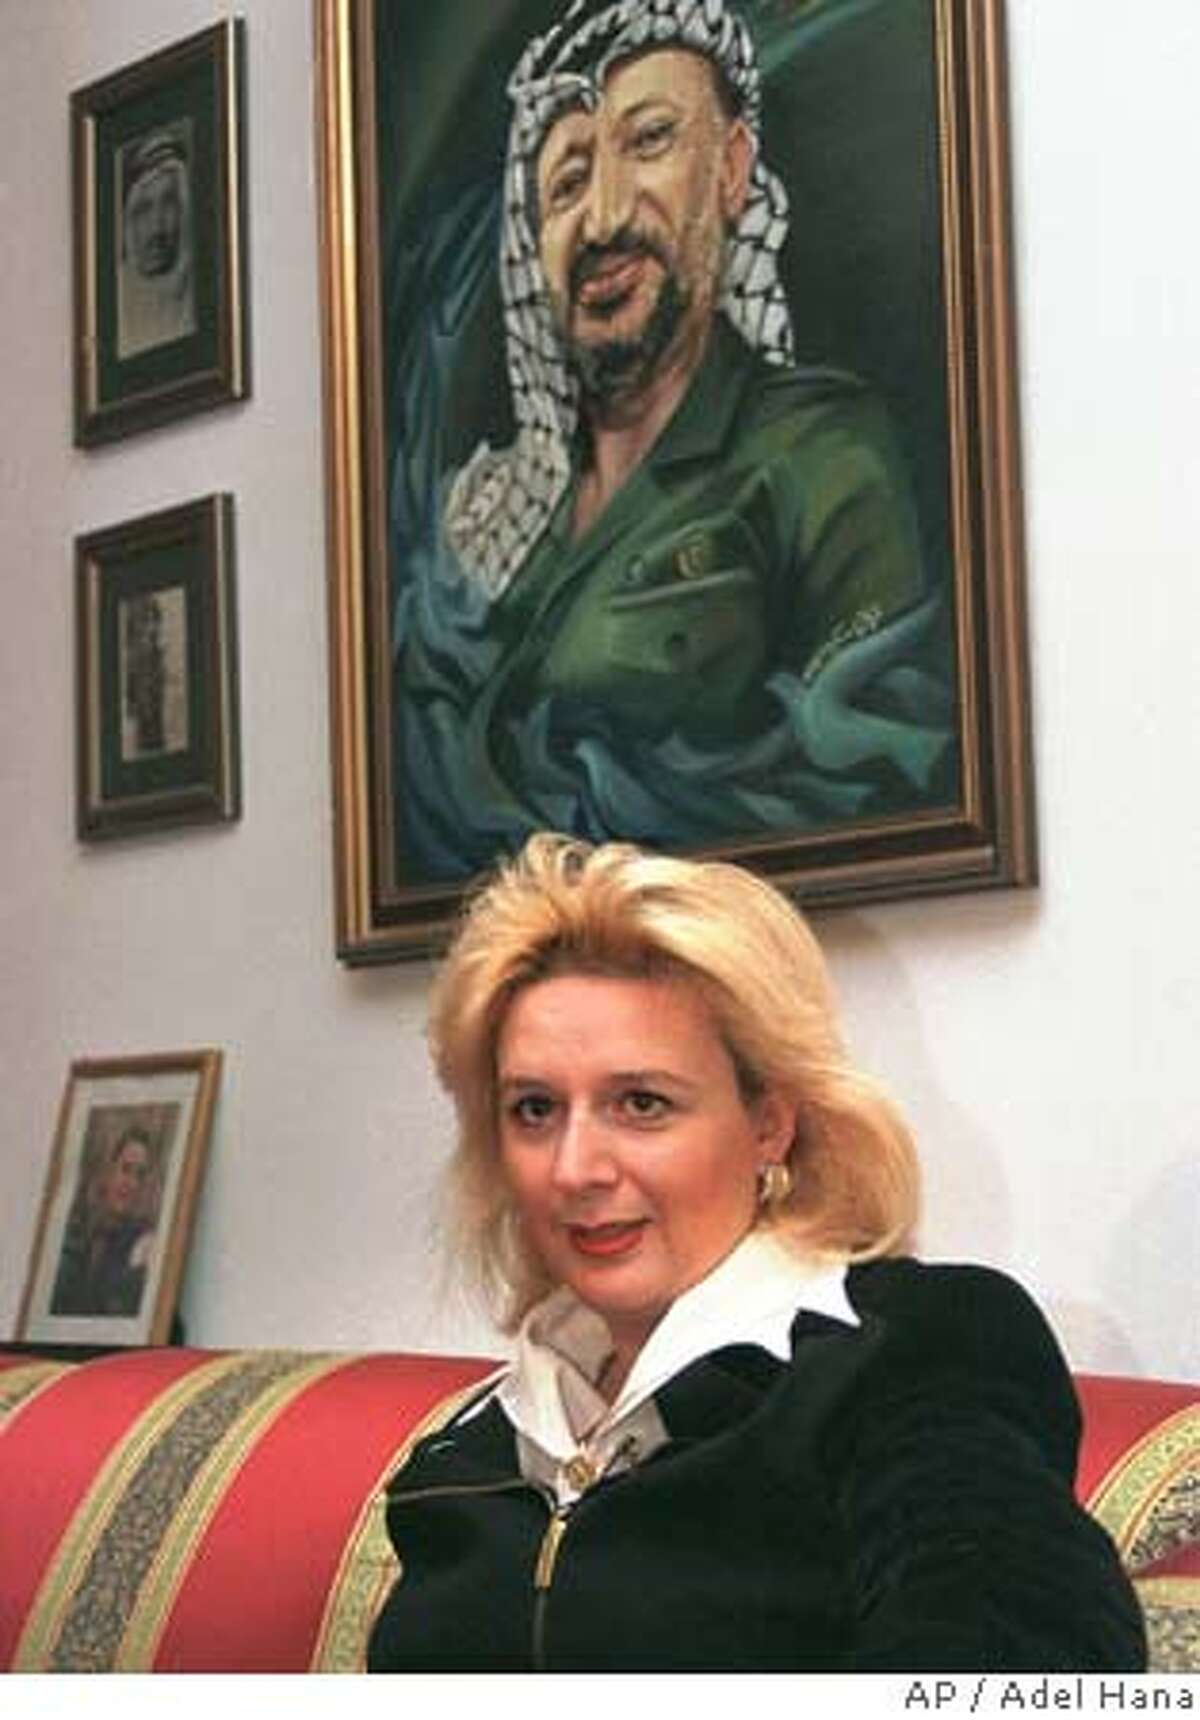 ** FILE ** Suha Arafat sits under a portrait of her husband, Palestinian leader Yasser Arafat, during an interview in this March 22, 1998 file photo in her Gaza home. French prosecutors have launched a money-laundering probe into suspected million-dollar transfers to accounts held by Suha Arafat, who lives in Paris, judicial officials said Wednesday Feb.11, 2004. (AP Photo/Adel Hana) also ran 02/16/2004 FILE Suha Arafats accounts at the Arab Bank and at French bank BNP are under scrutiny by prosecutors. Suha Arafat